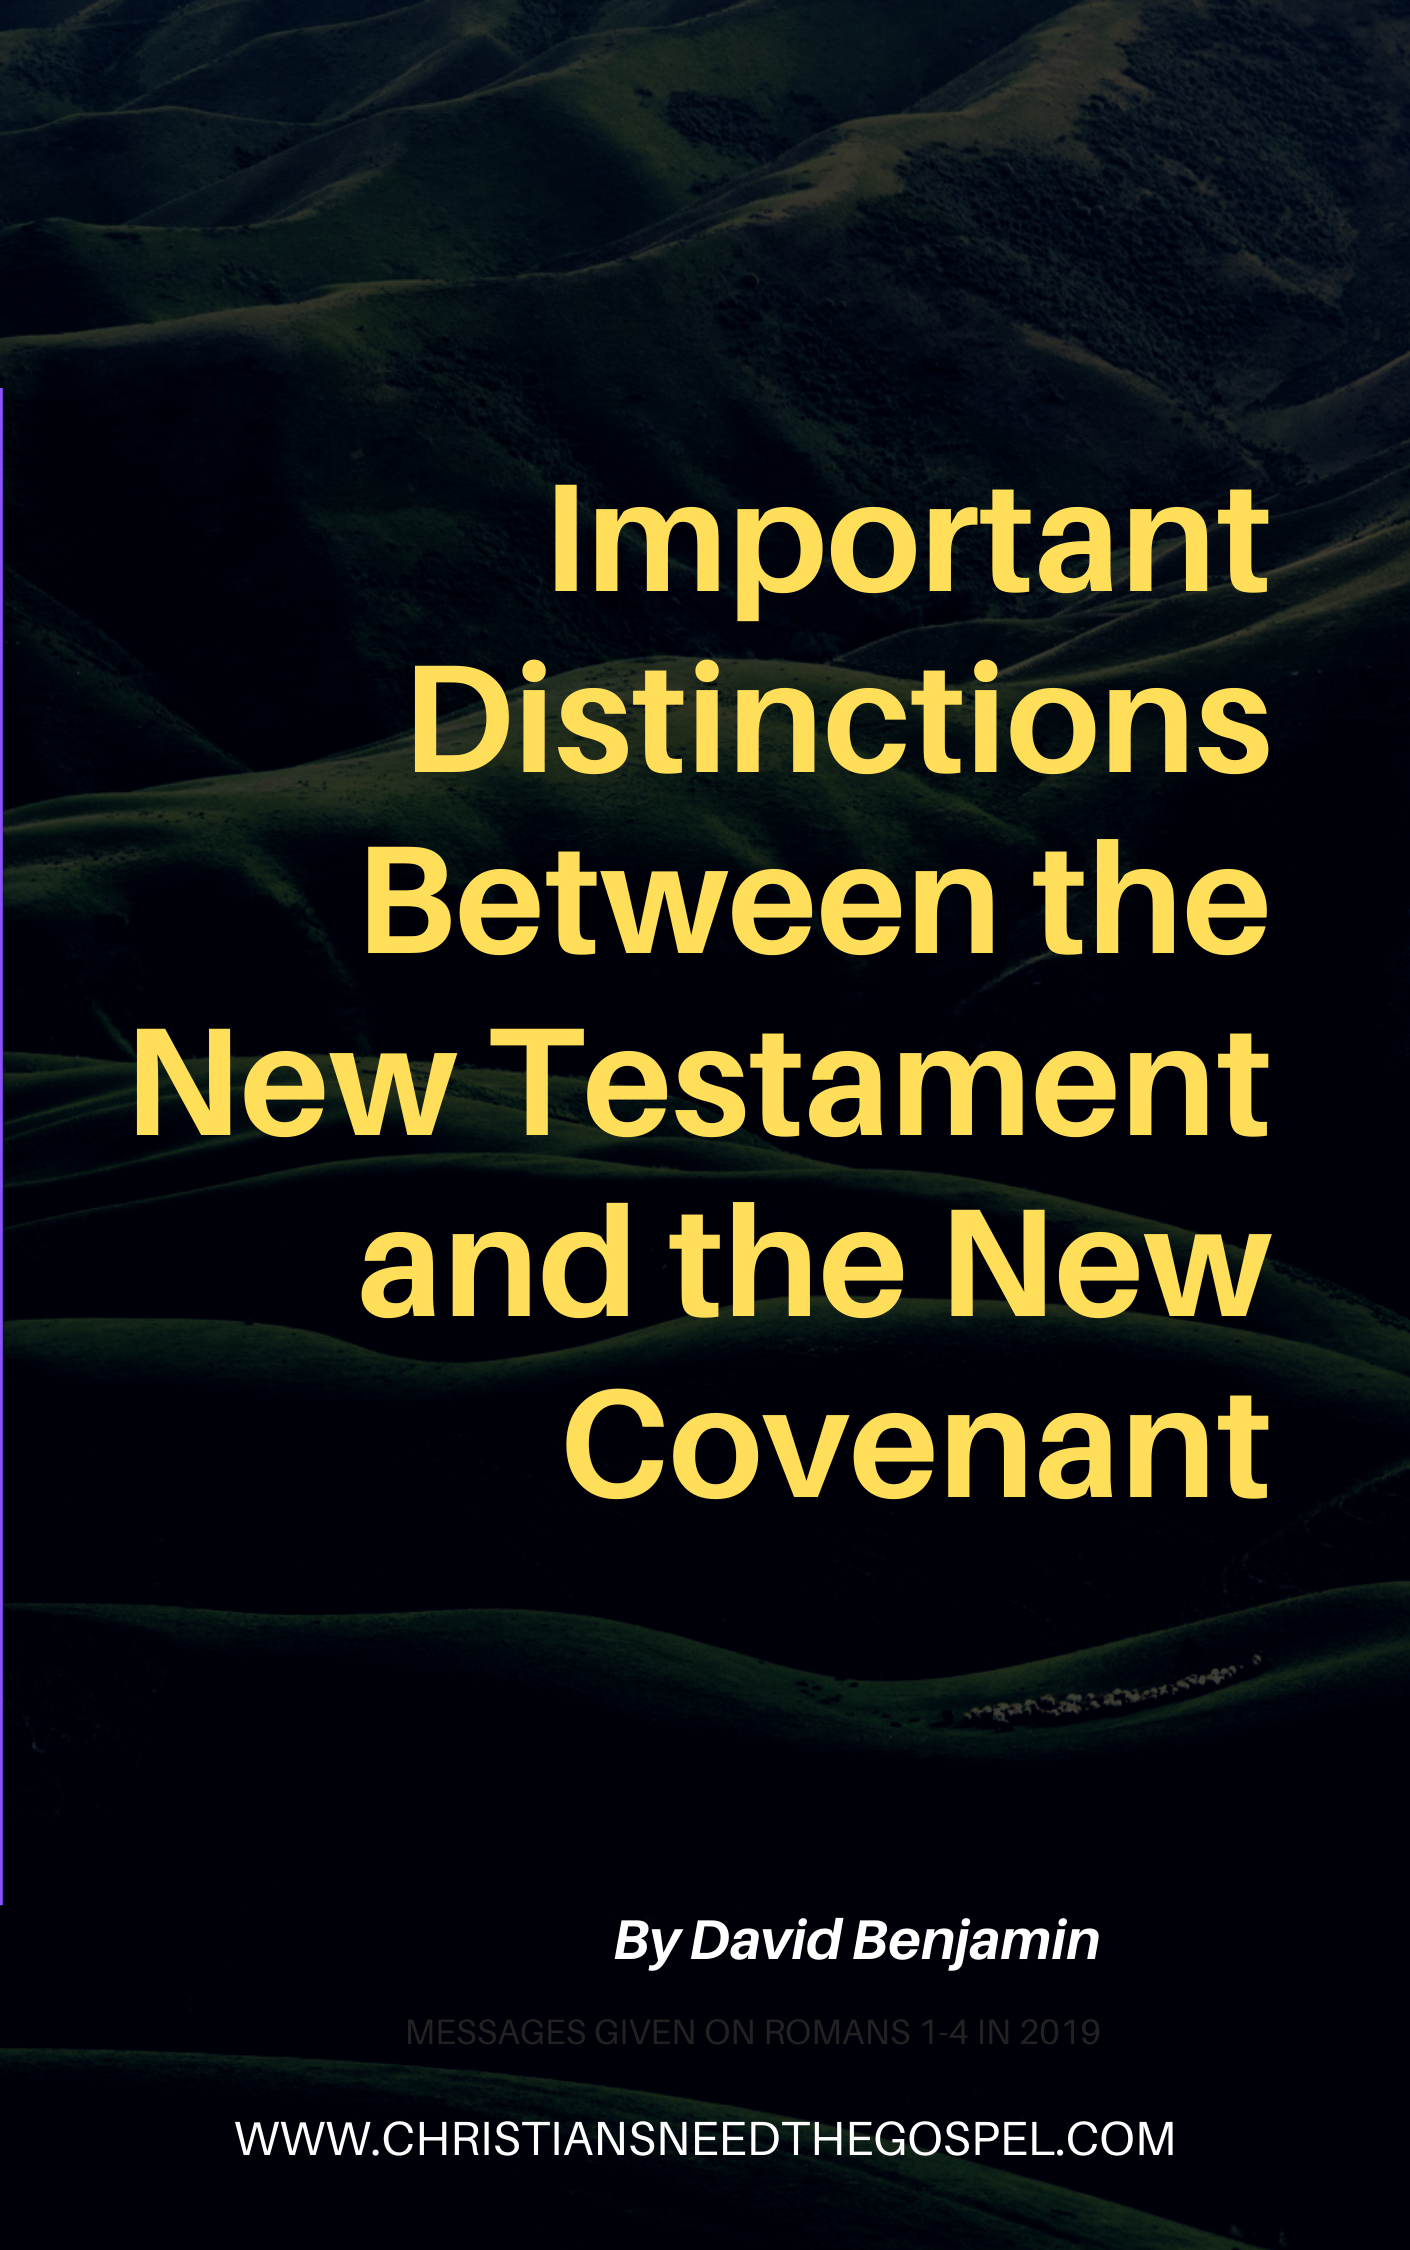 Distinctions Between New Testament and New Covenant